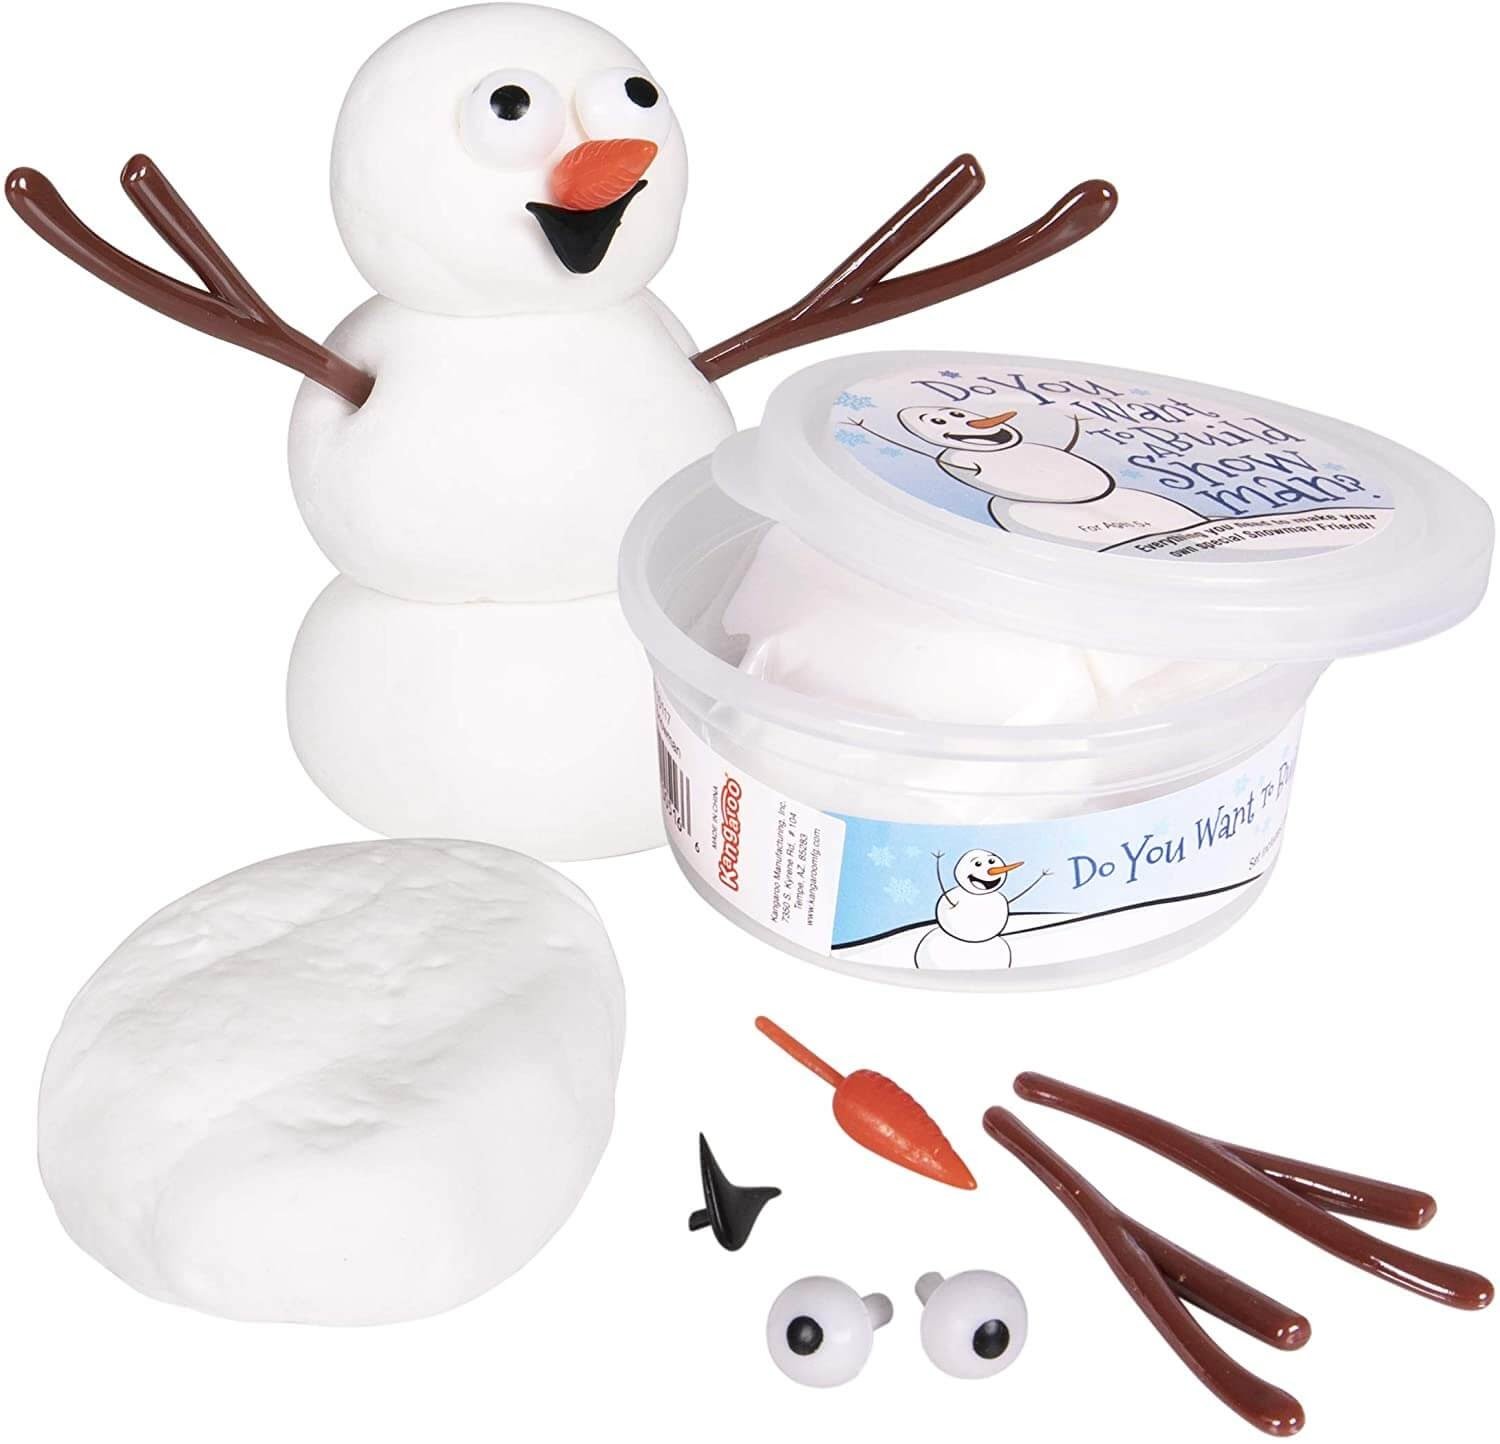 Do you want to build a snowman? kit